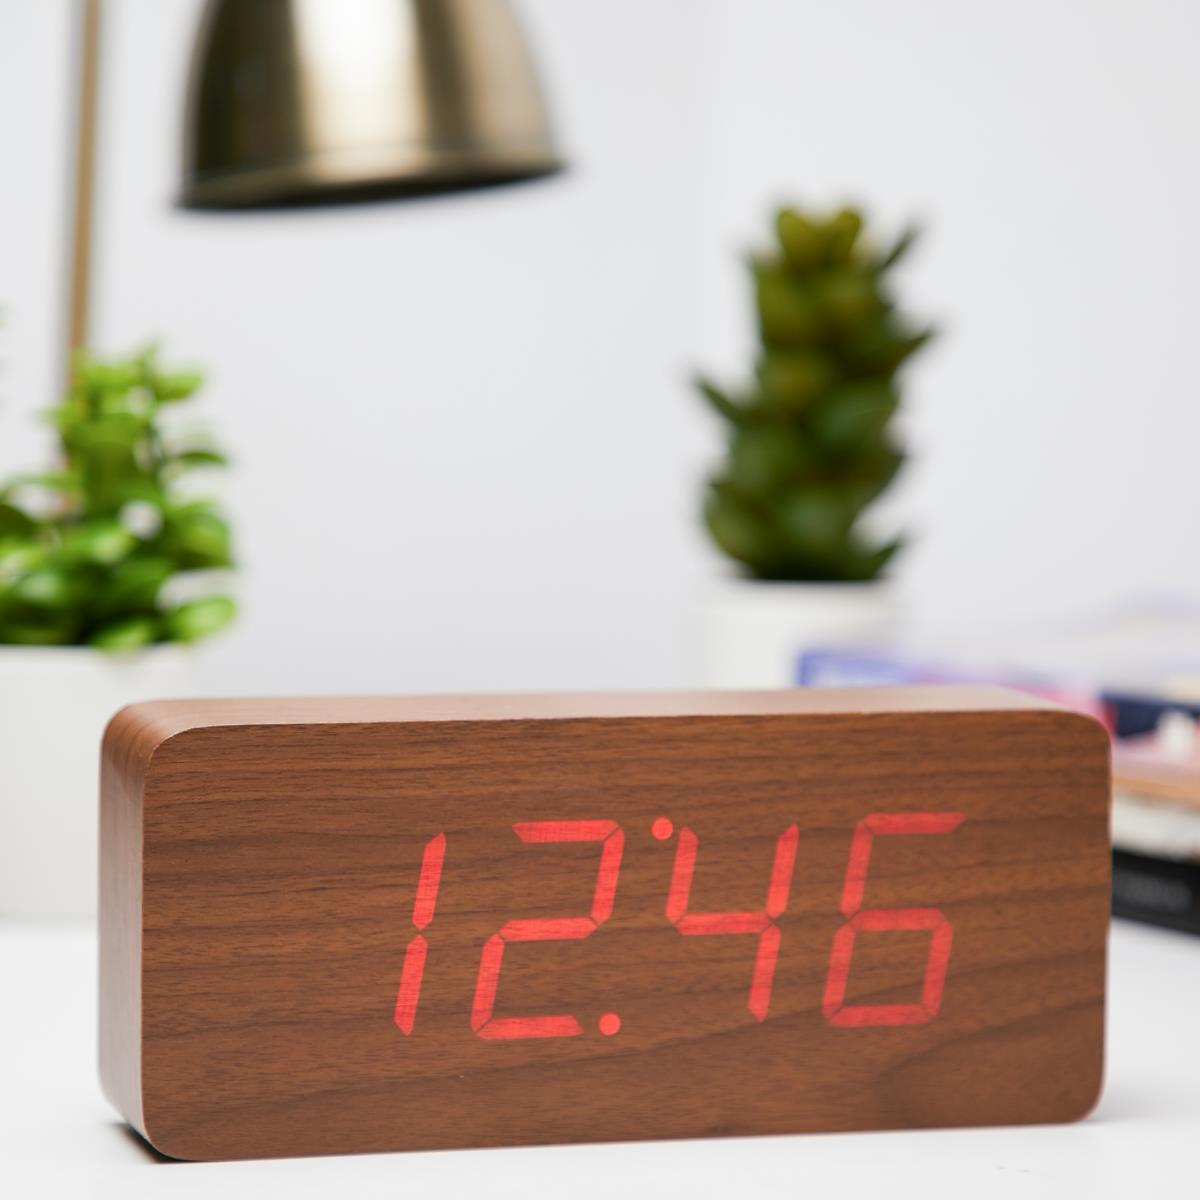 Checkmate LED Big Wood Cuboid Desk Clock Red 21cm VGY 6602R 11